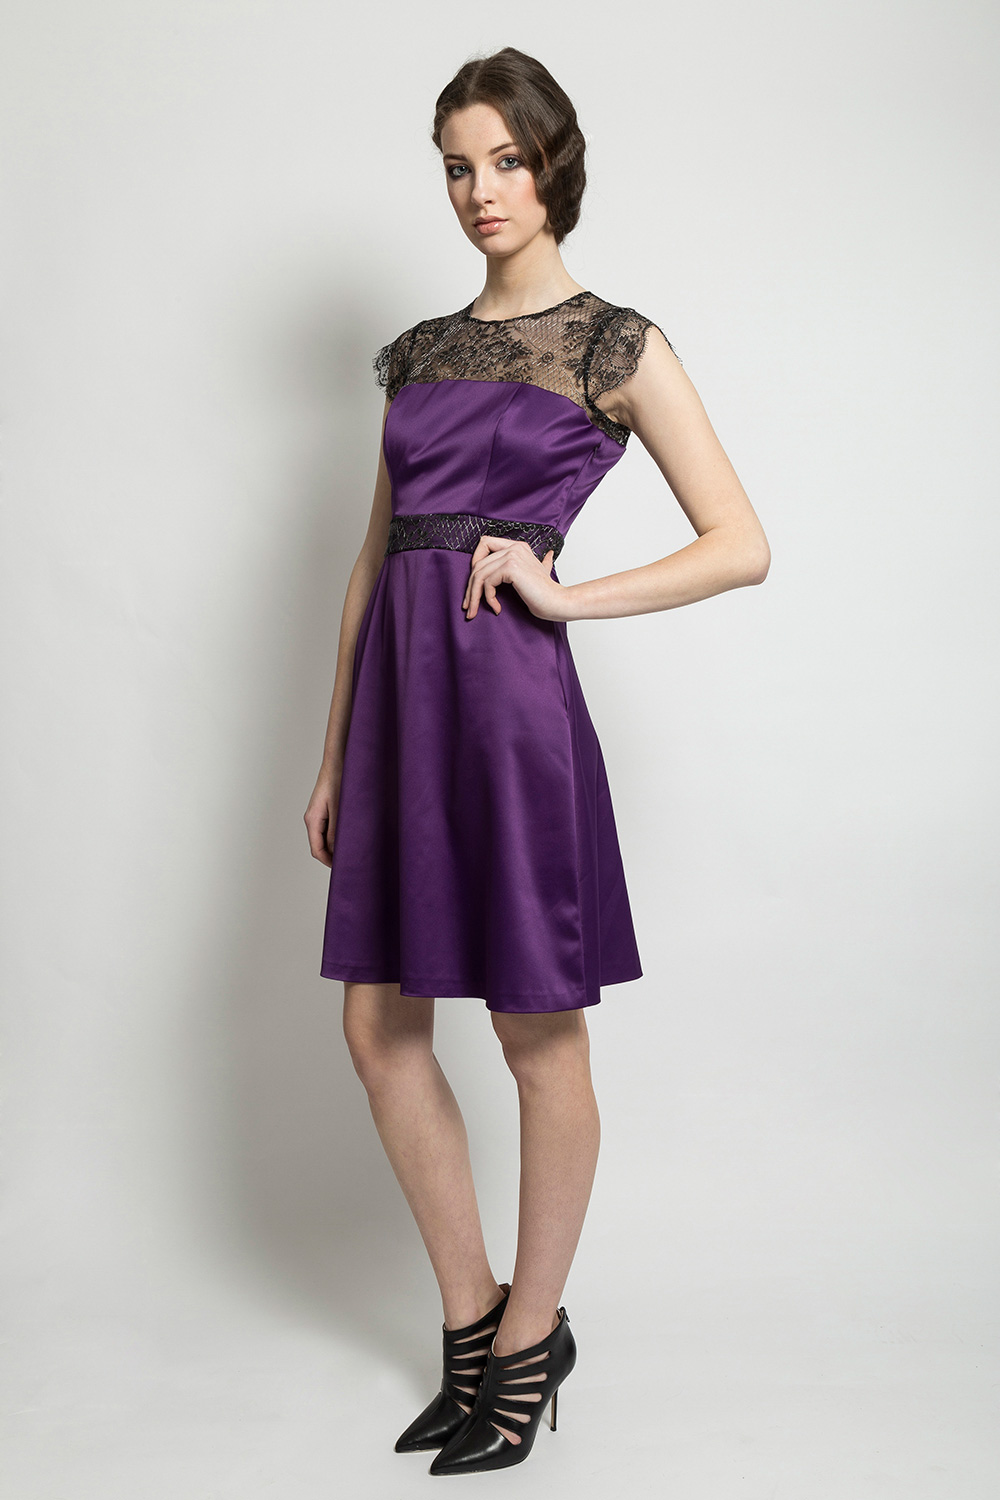 AW14-Blac-Silver-Chantilly-Lace-and-Purple-Dress.jpg